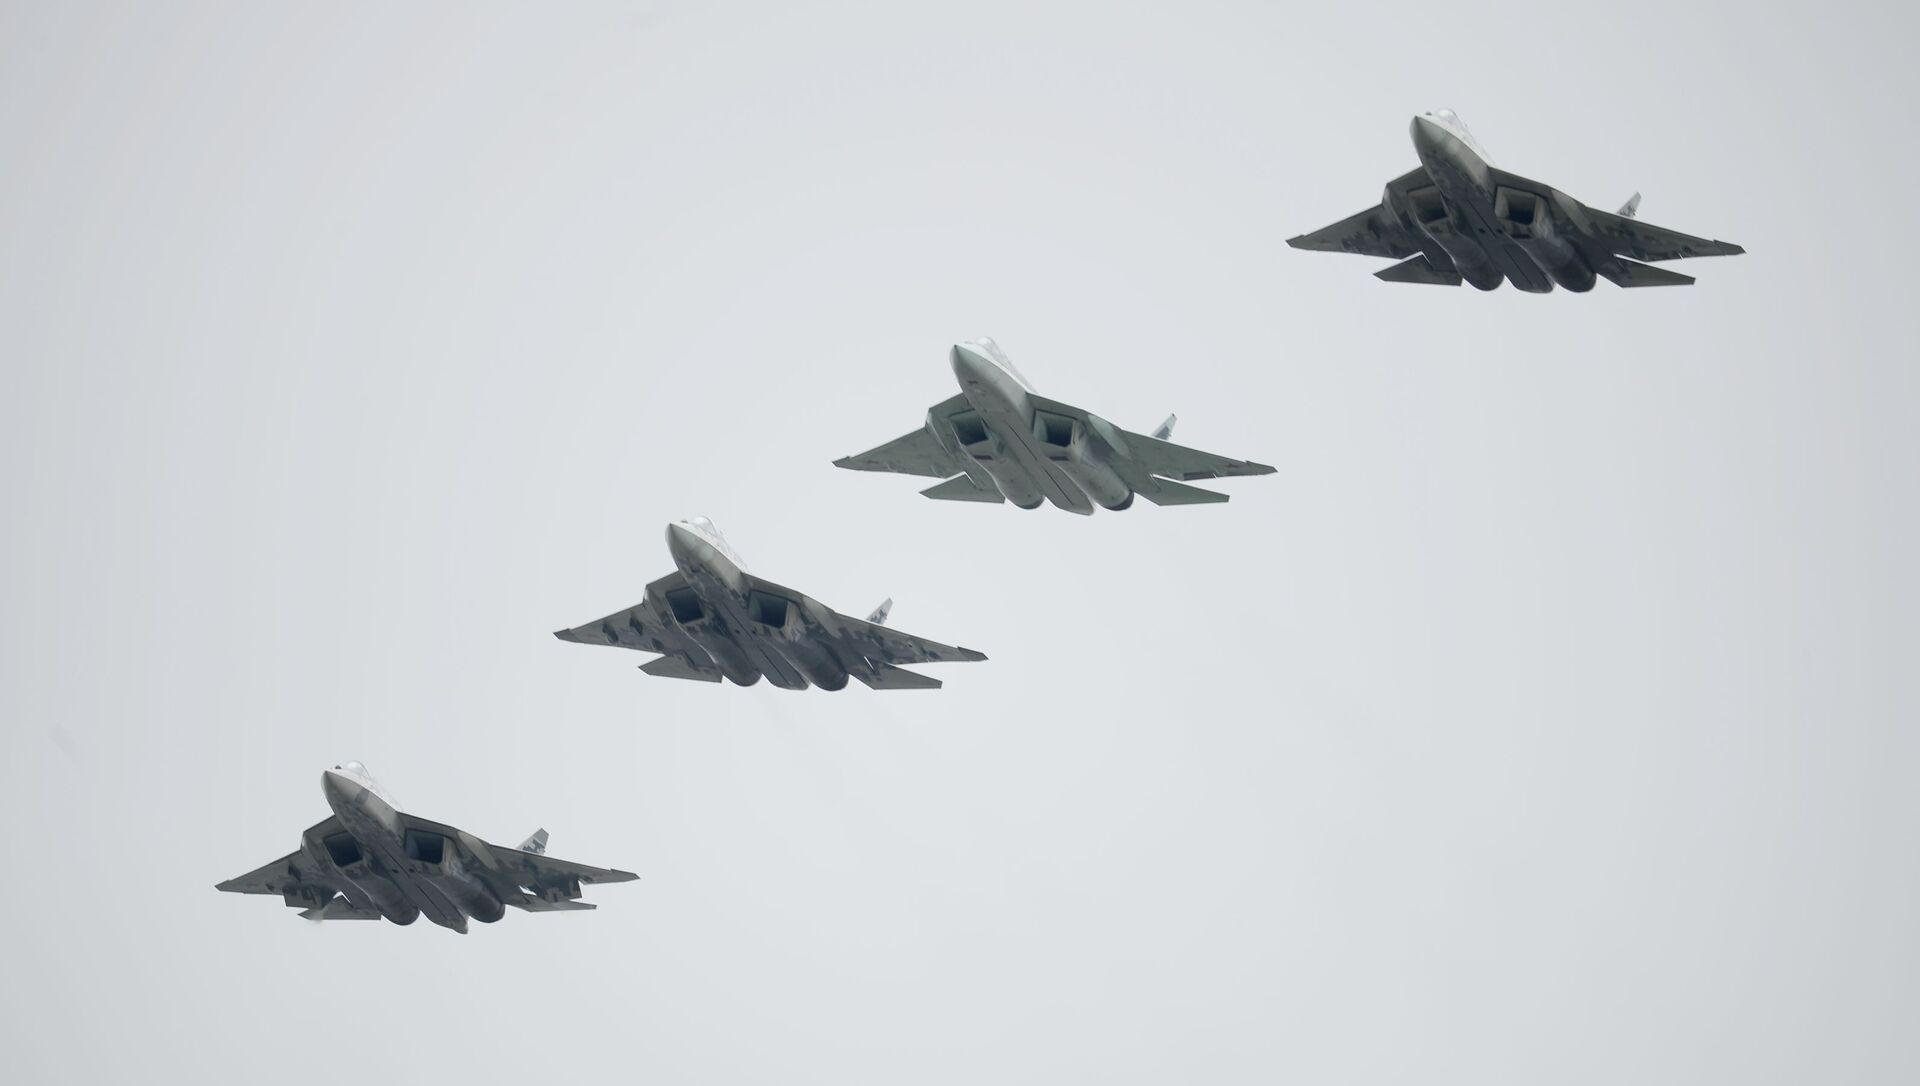 Russian Su-57 fifth-generation fighter jets during the Victory Parade in Moscow - Sputnik Italia, 1920, 11.03.2021